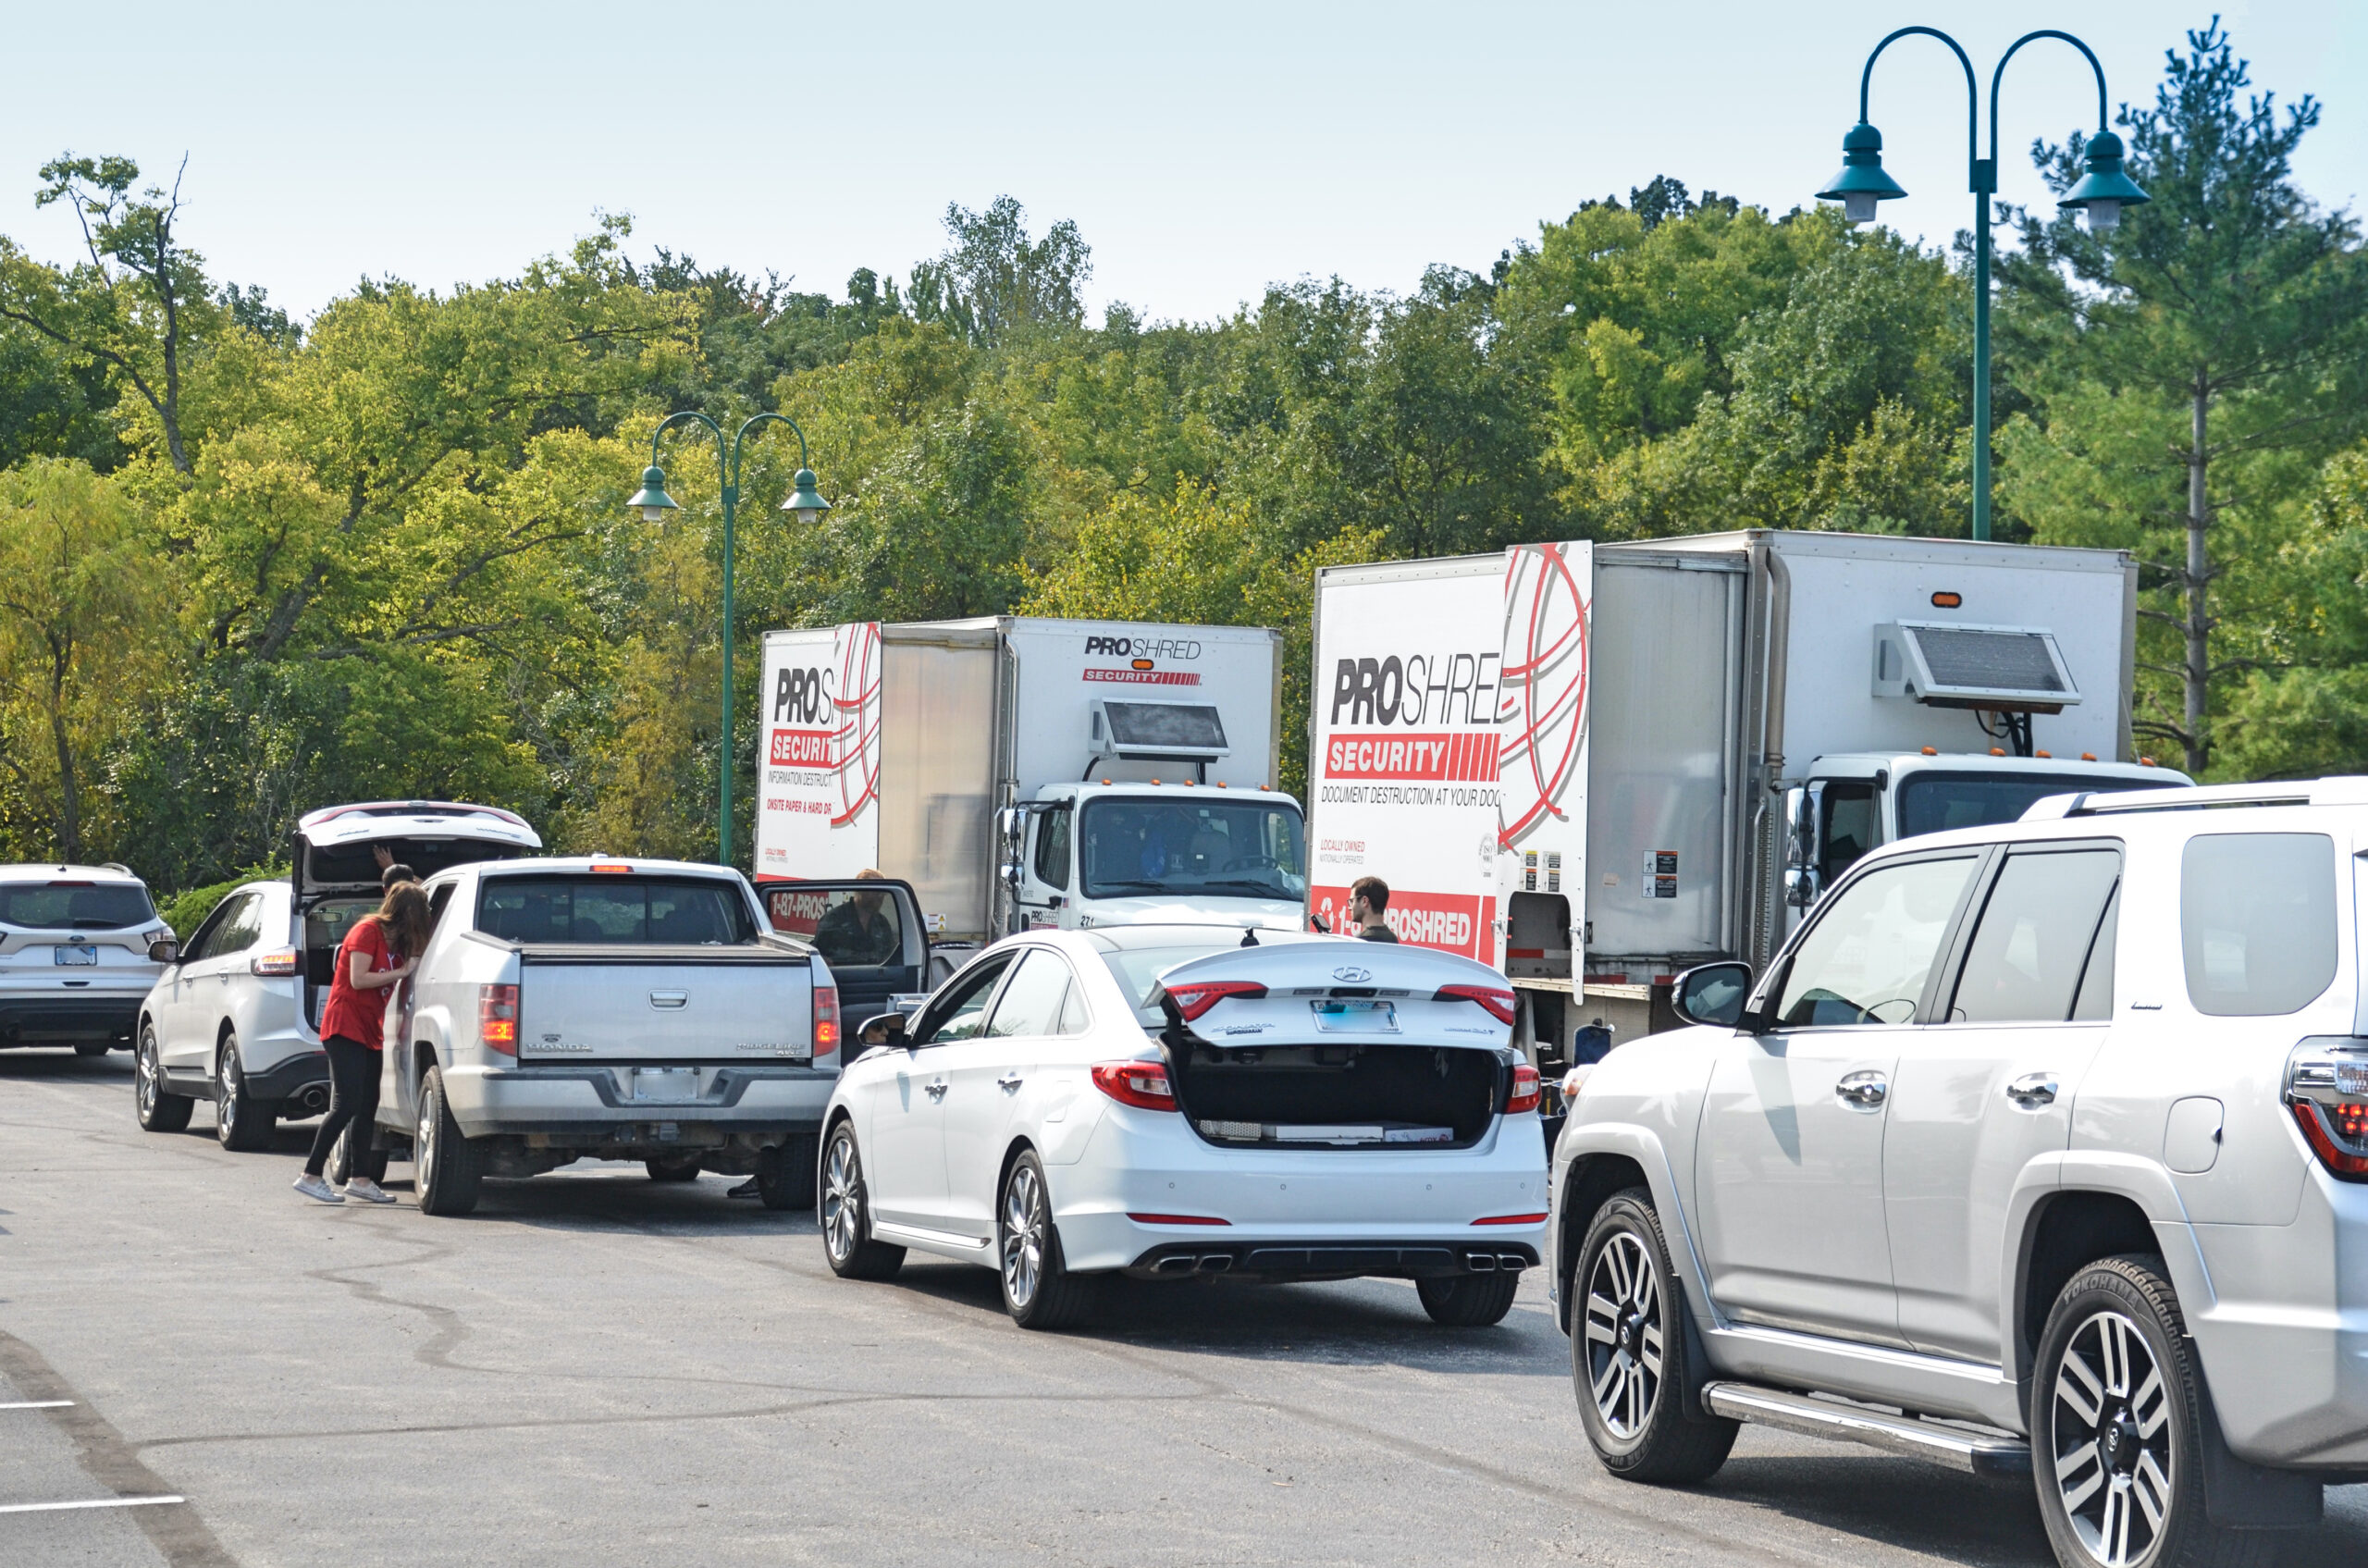 Cars in line at 2019 Shred Day in Leawood Office parking lot.